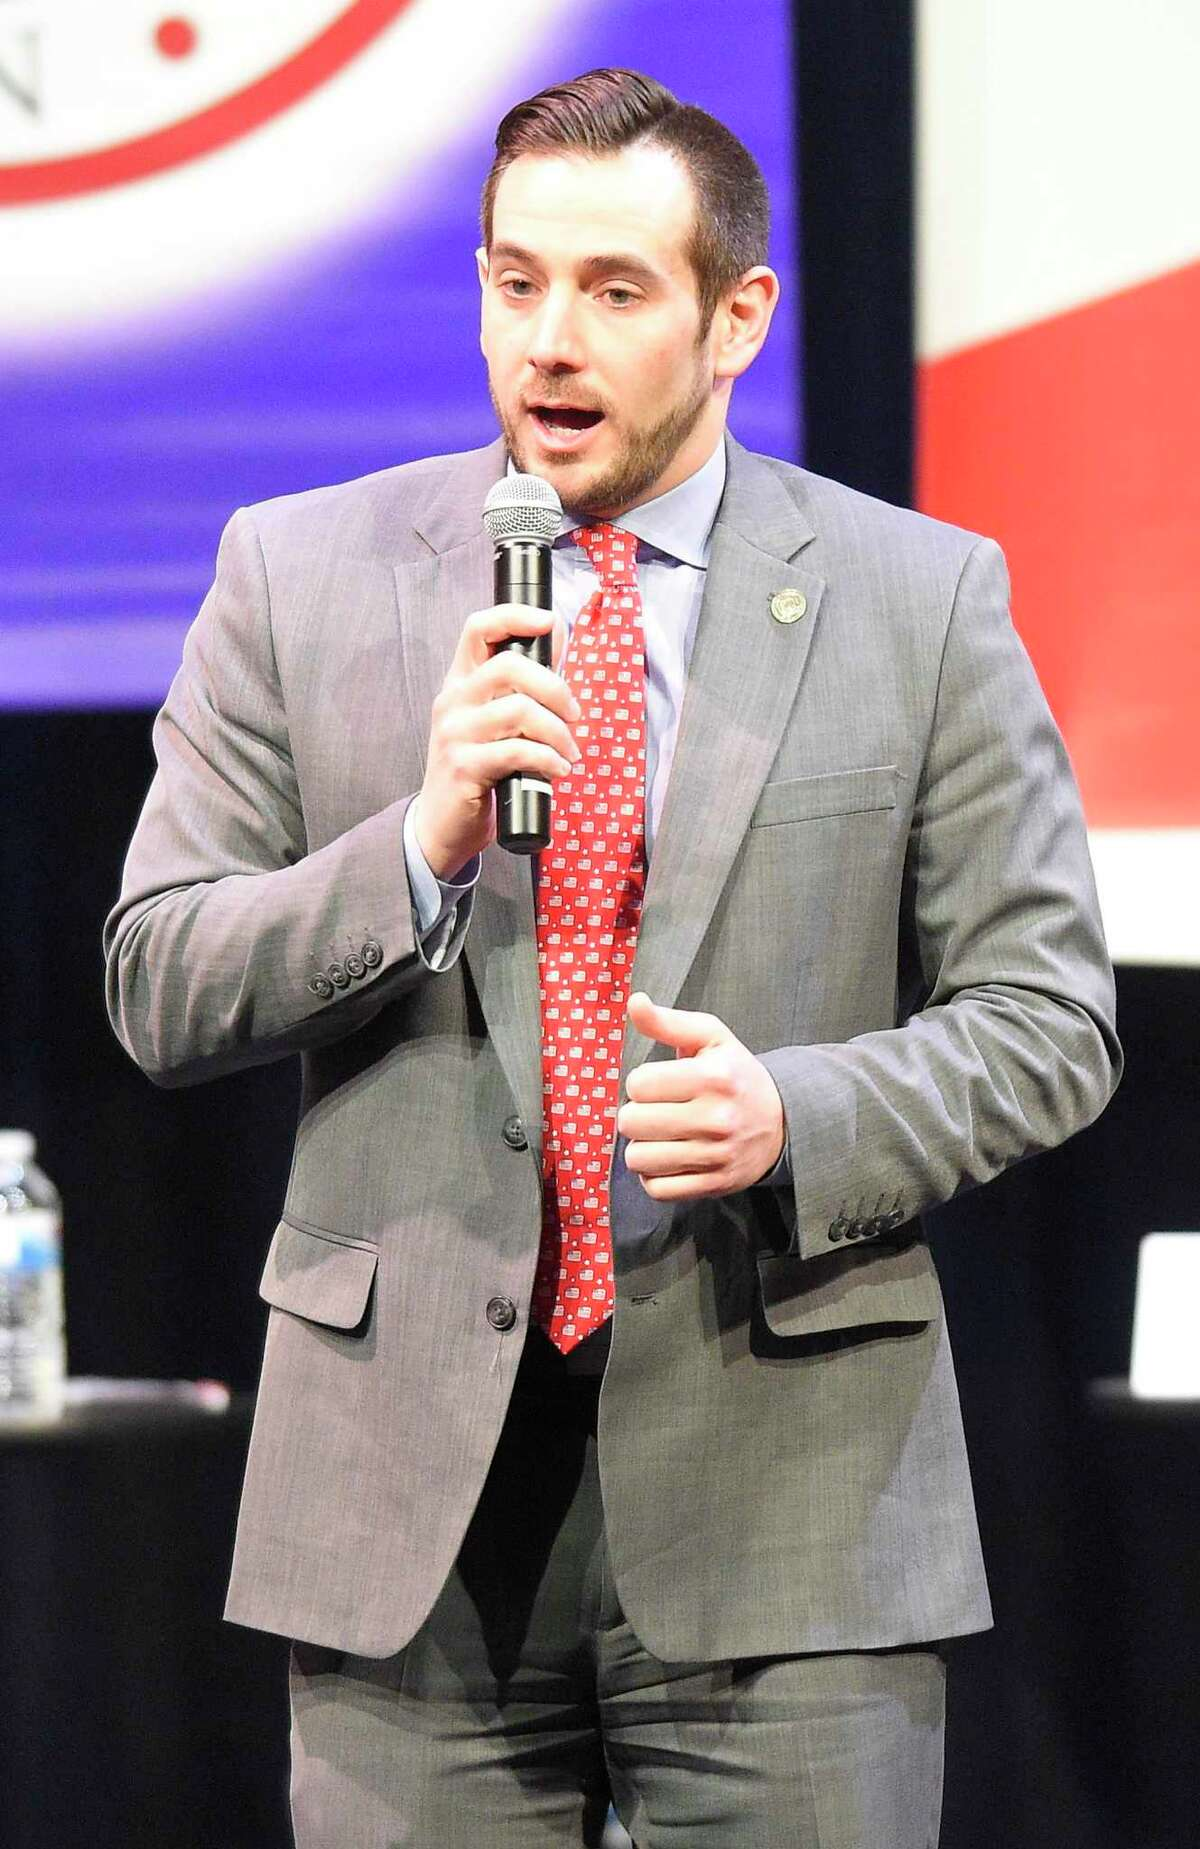 J.R. Romano, chairman of the Republican State Central Committee, shown here at a party debate in 2018, will not seek a fourth two-year term next year.